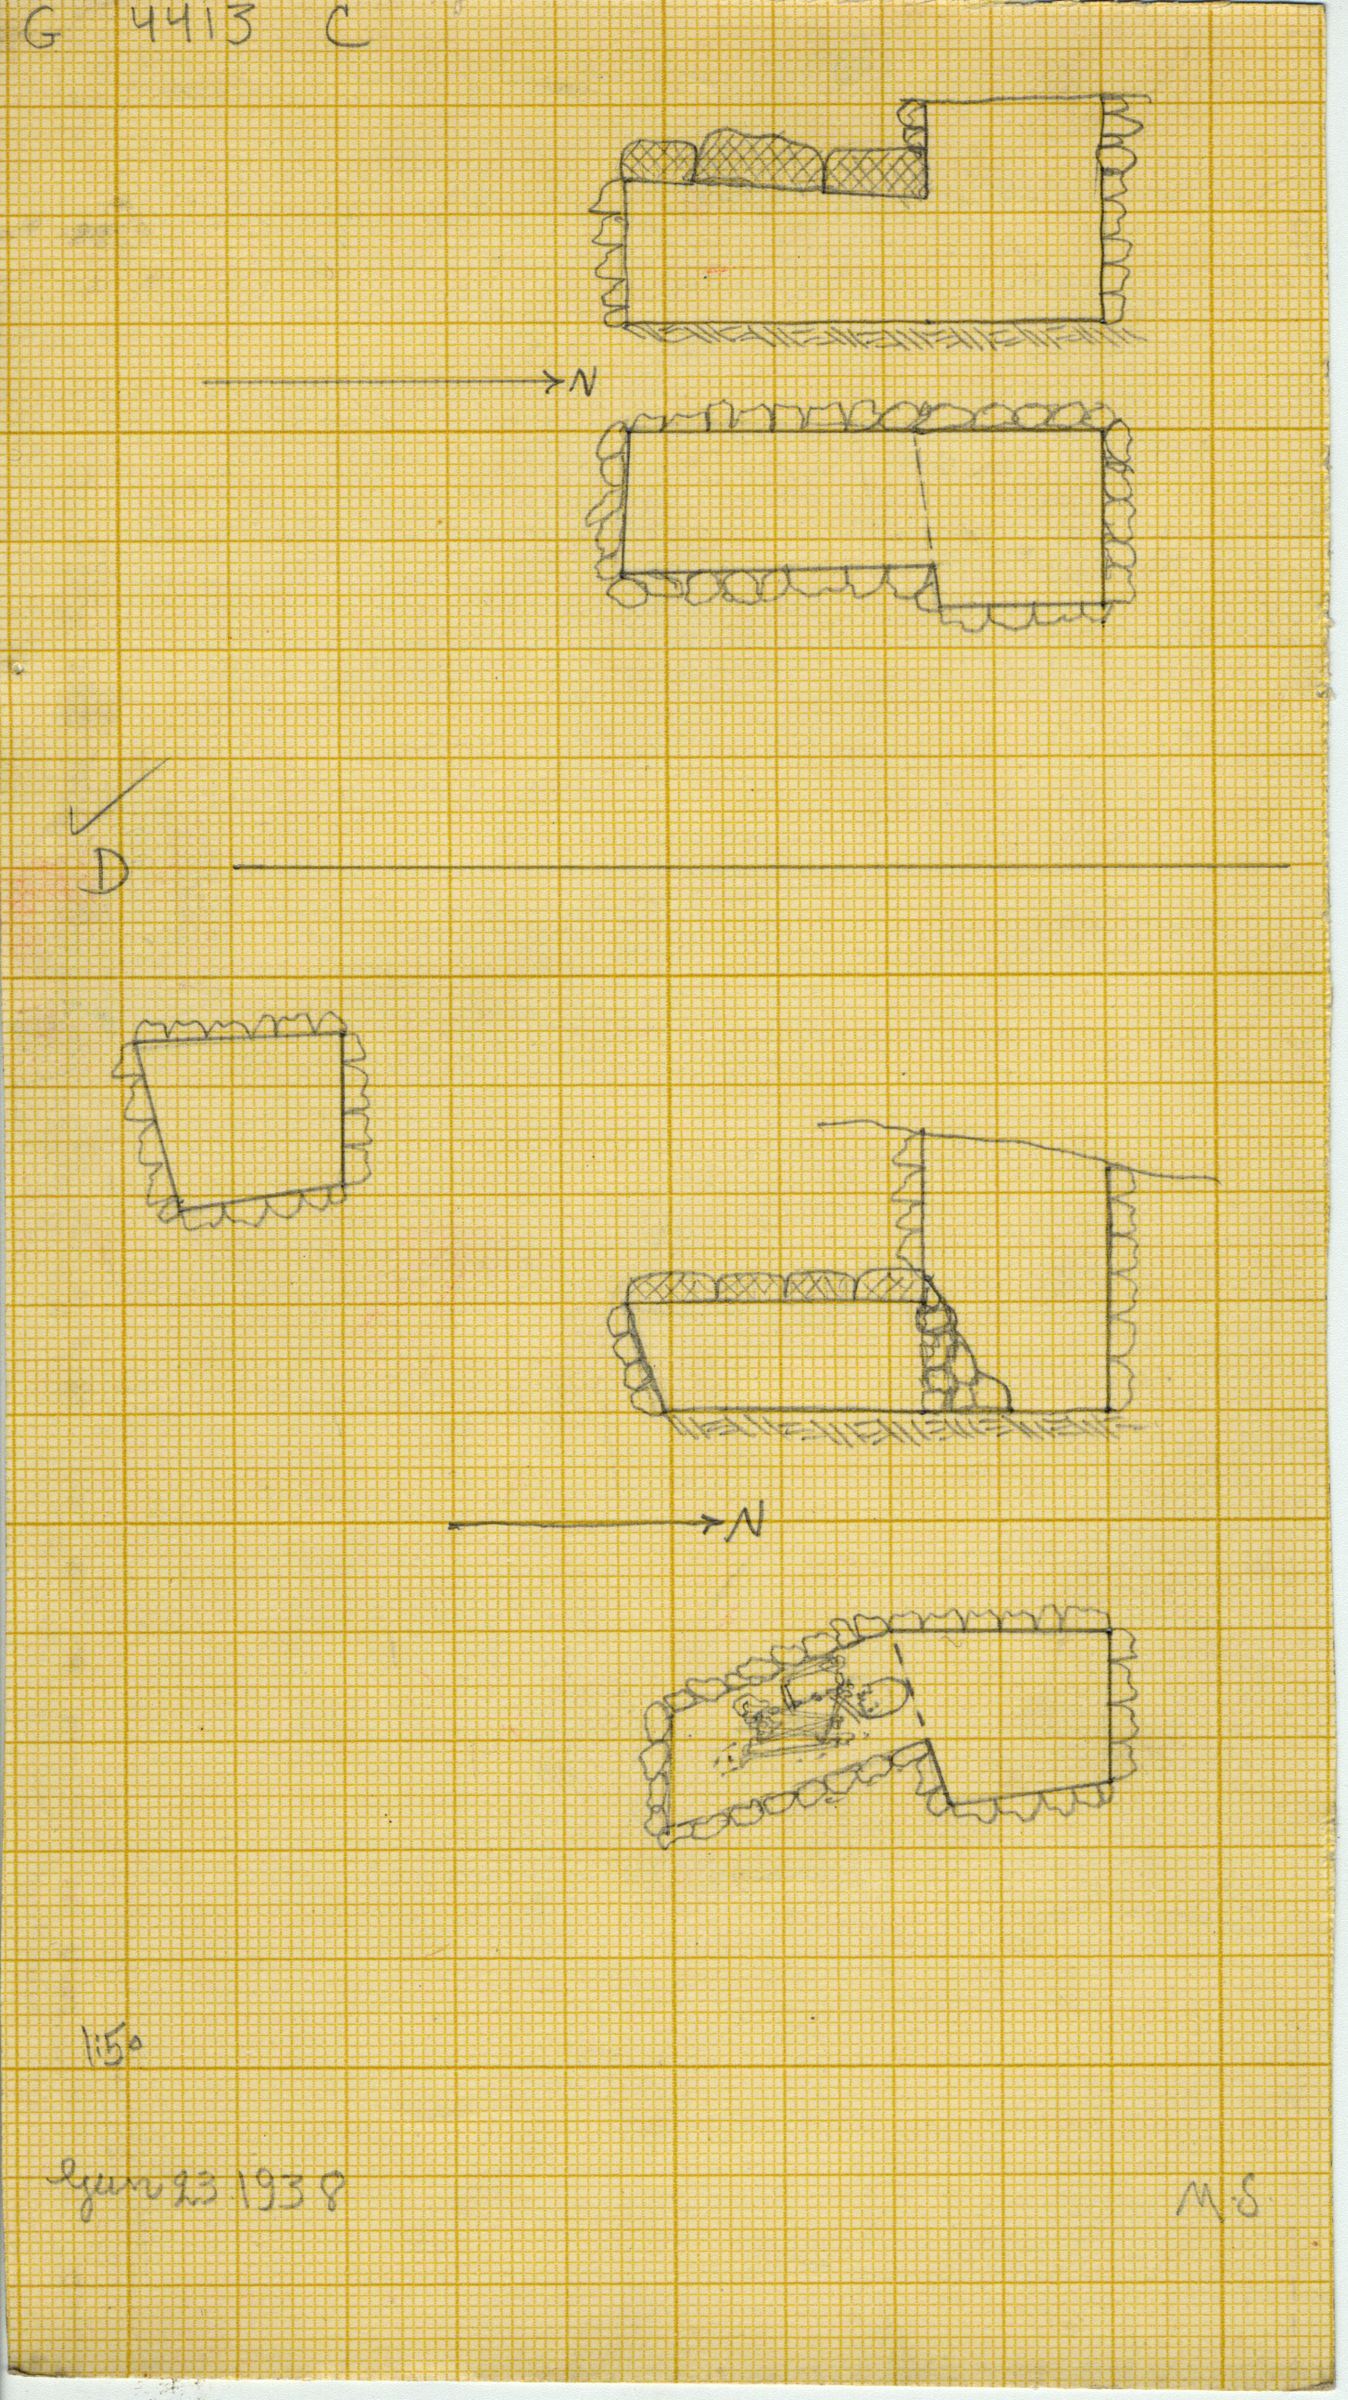 Maps and plans: G 4413, Shaft C and D